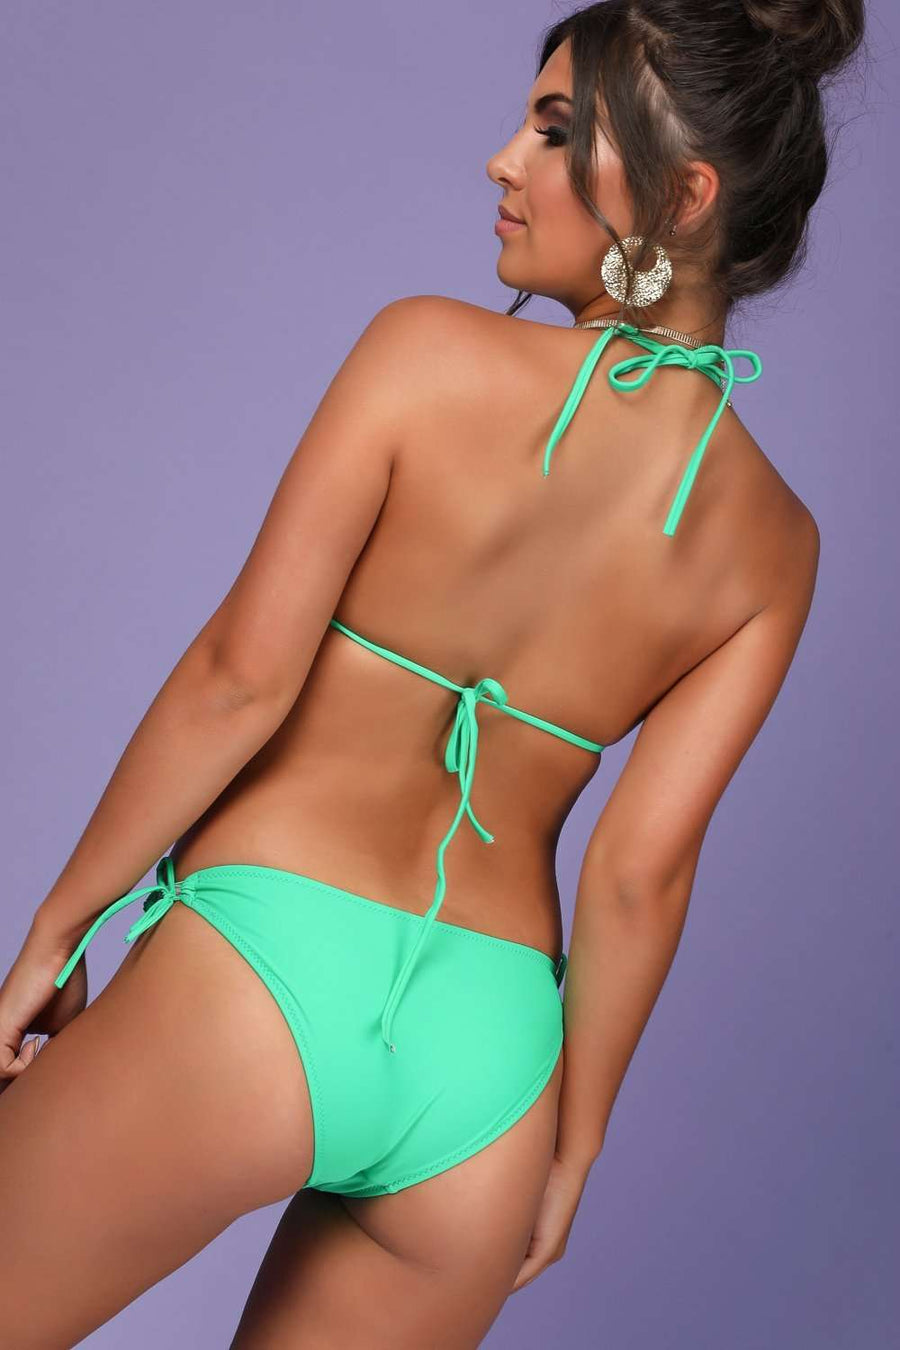 Amanda Ruffle Halterneck Cut Out Swim Suit - bejealous-com